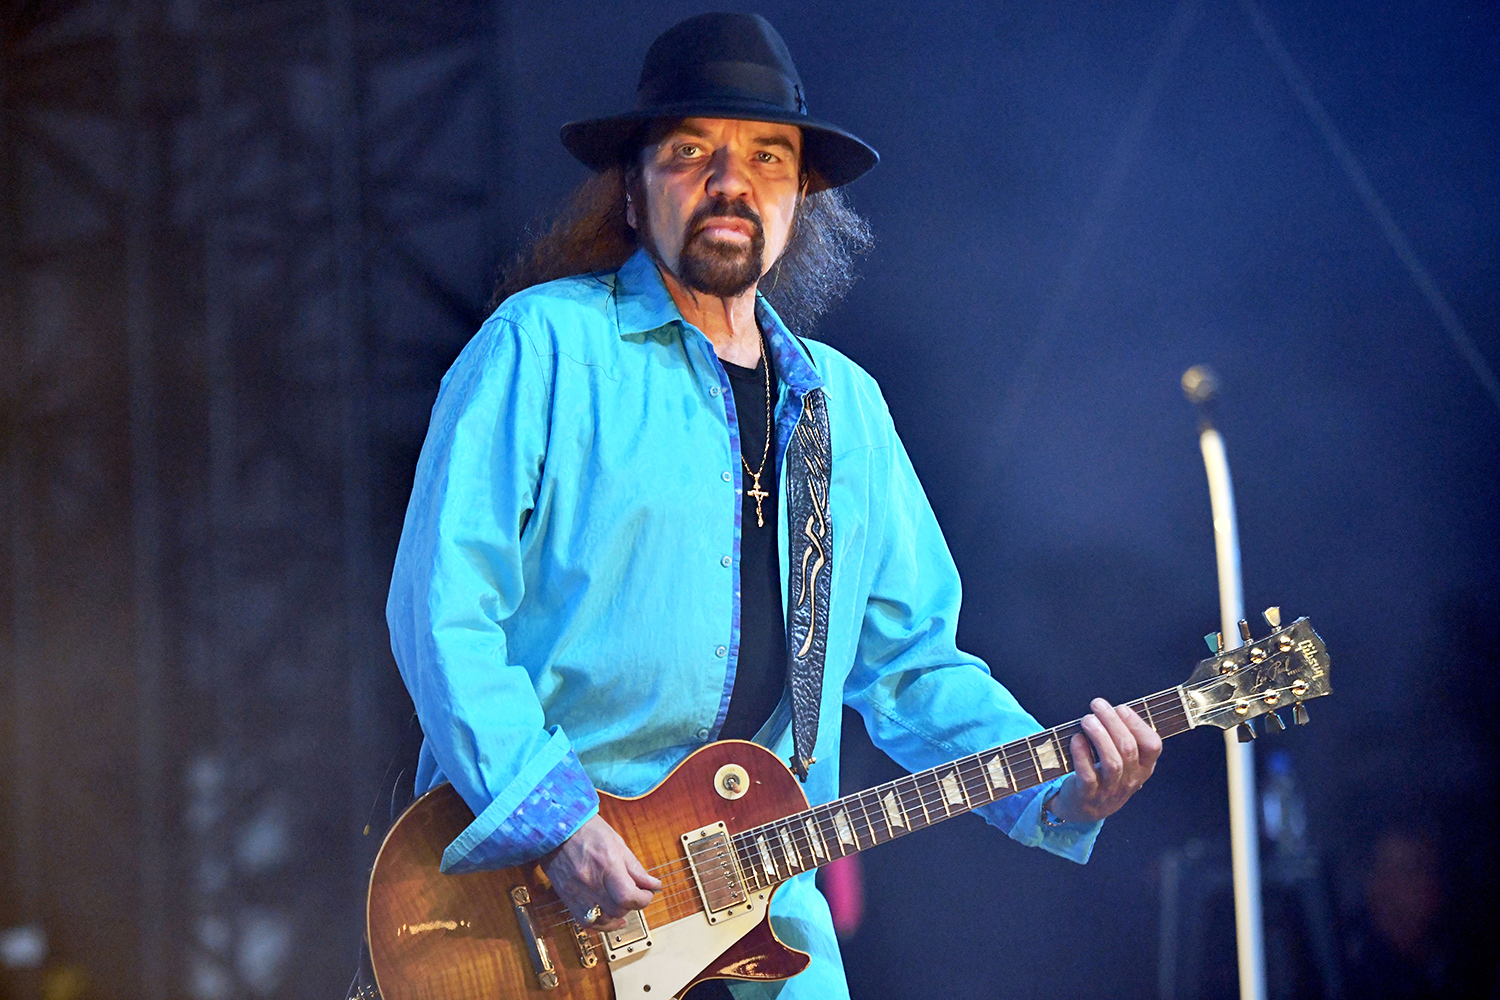 Guitarist Gary Rossington, founding member of Lynyrd Skynyrd, performs onstage during Day 2 of the Stagecoach Music Festival on April 27, 2019 in Indio, California.